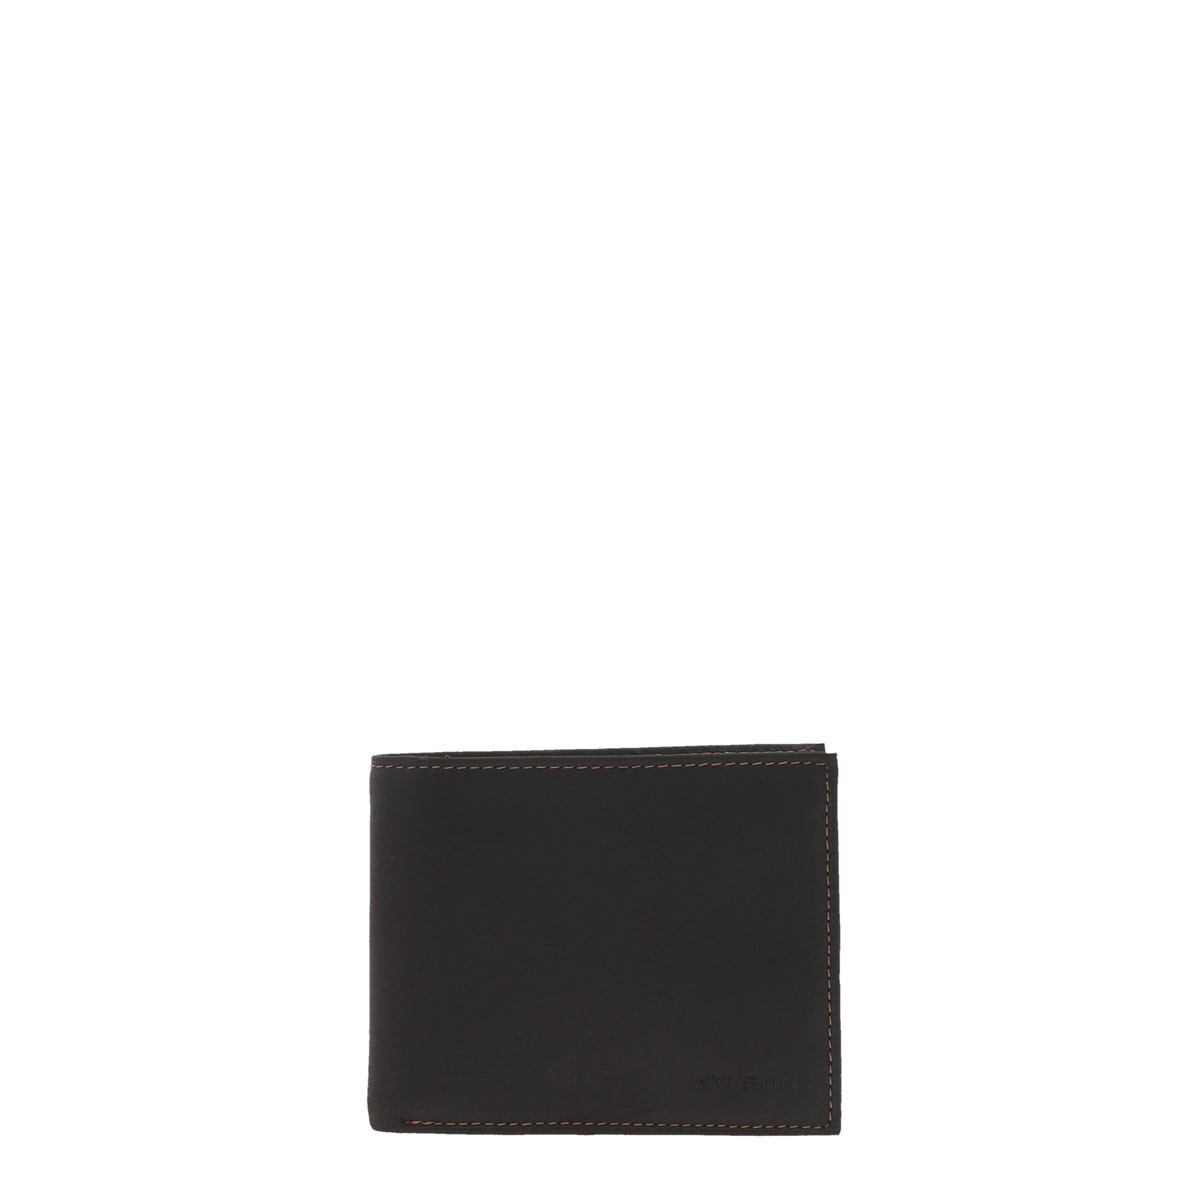 Portefeuille homme marron WYLSON